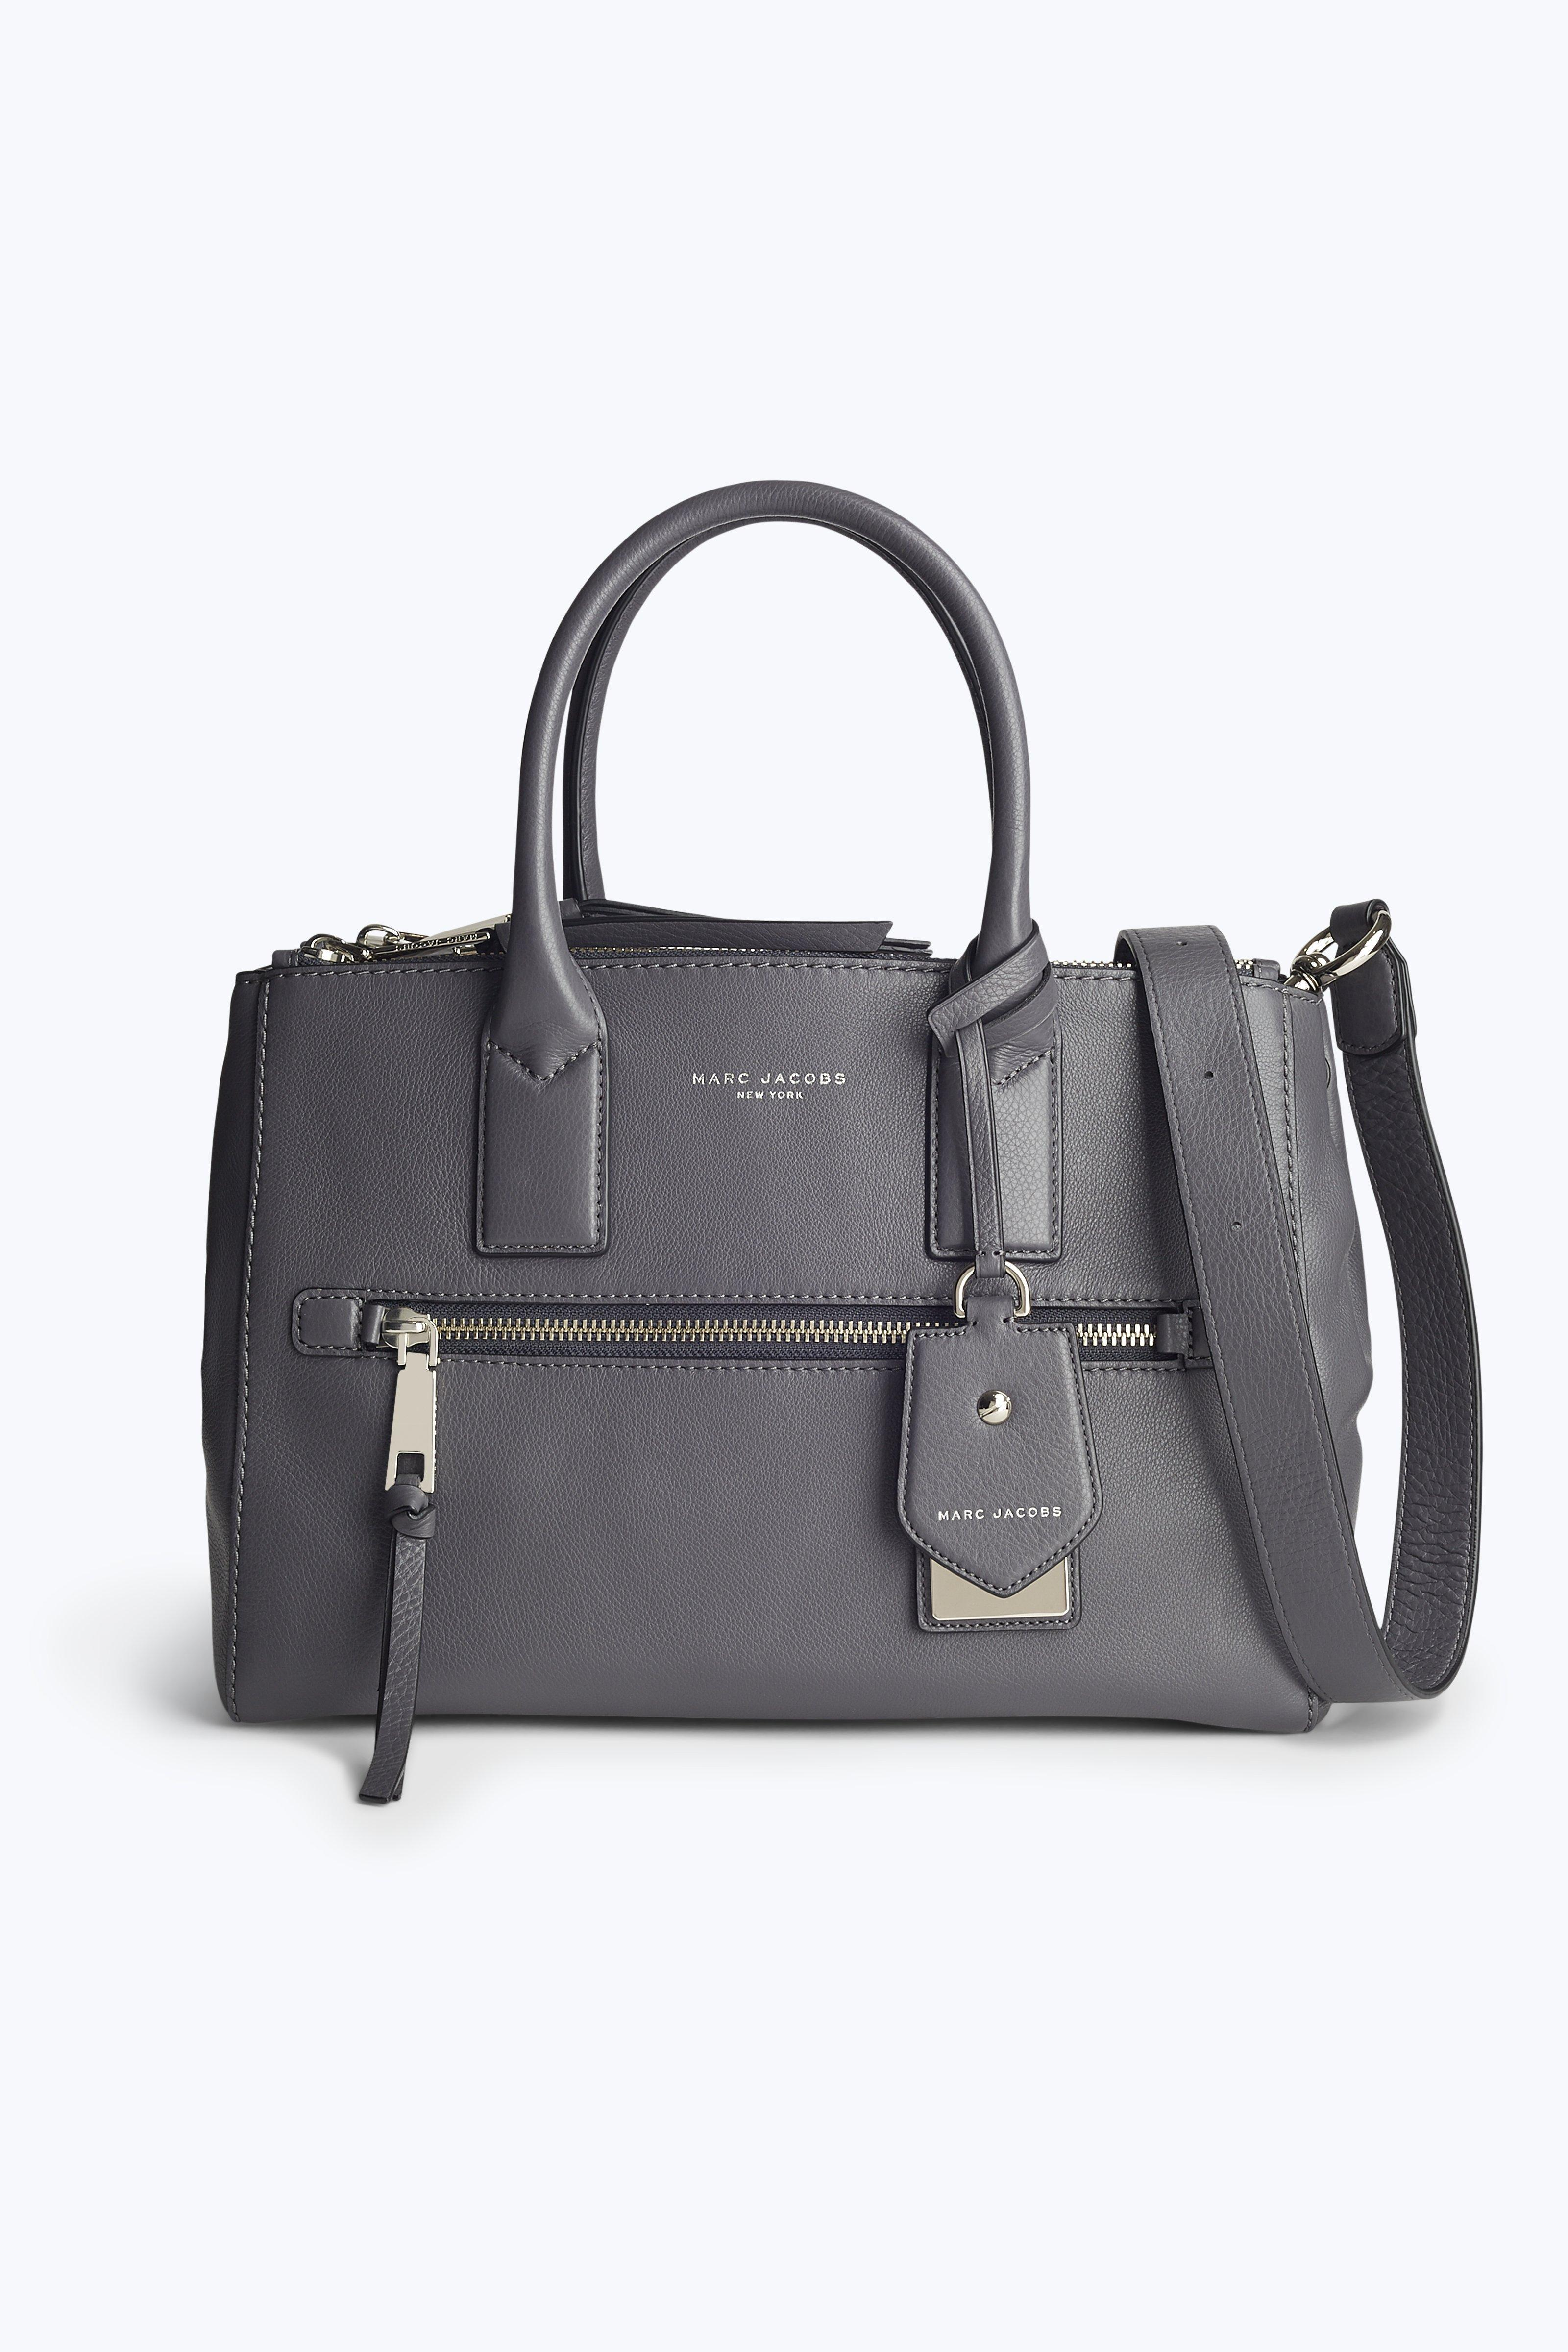 Marc Jacobs Recruit East-West Tote In Black